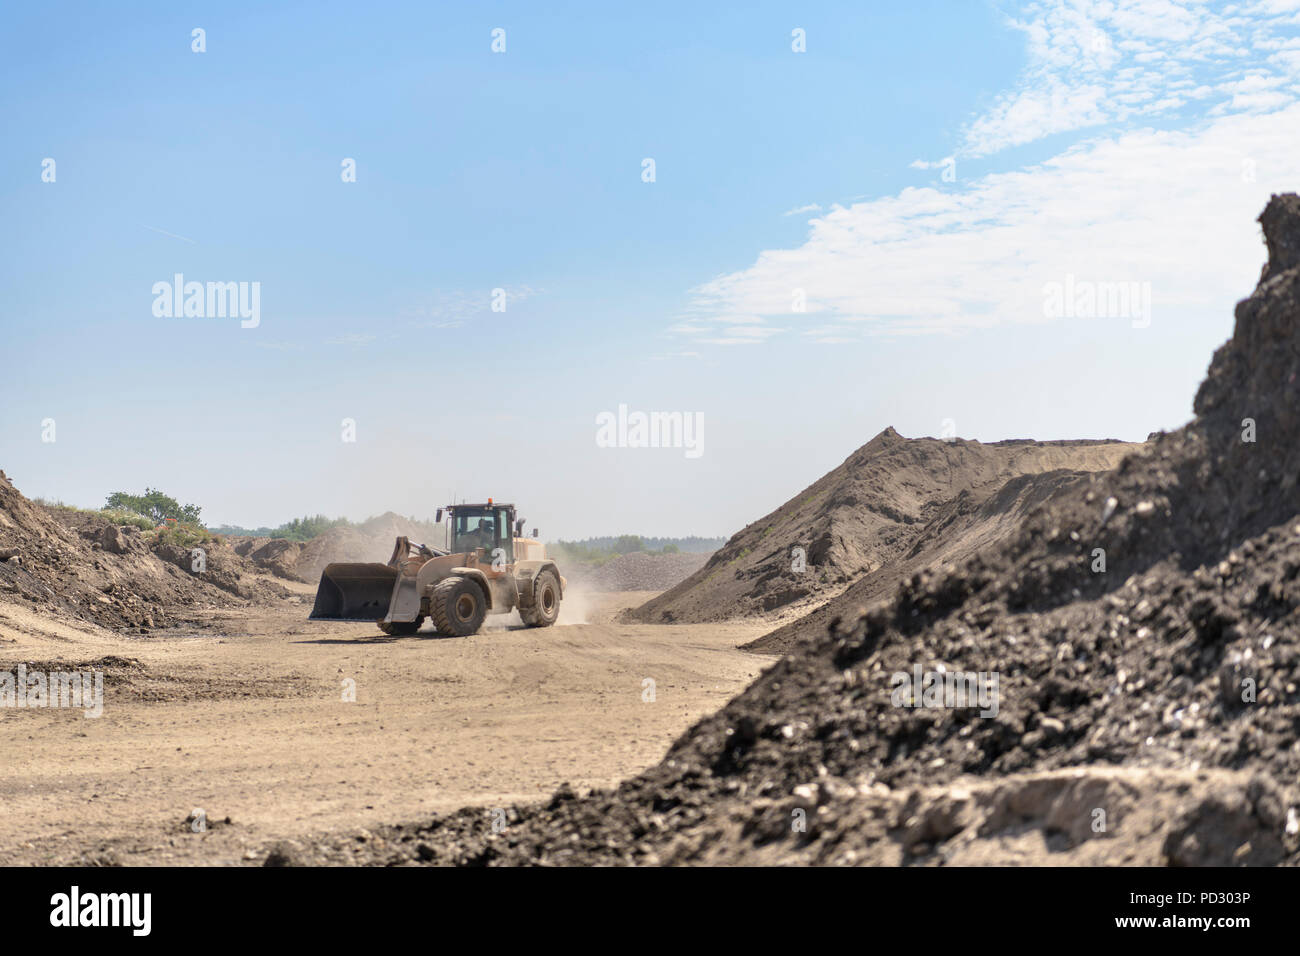 Digger on the move in distance in concrete recycling site - Stock Image